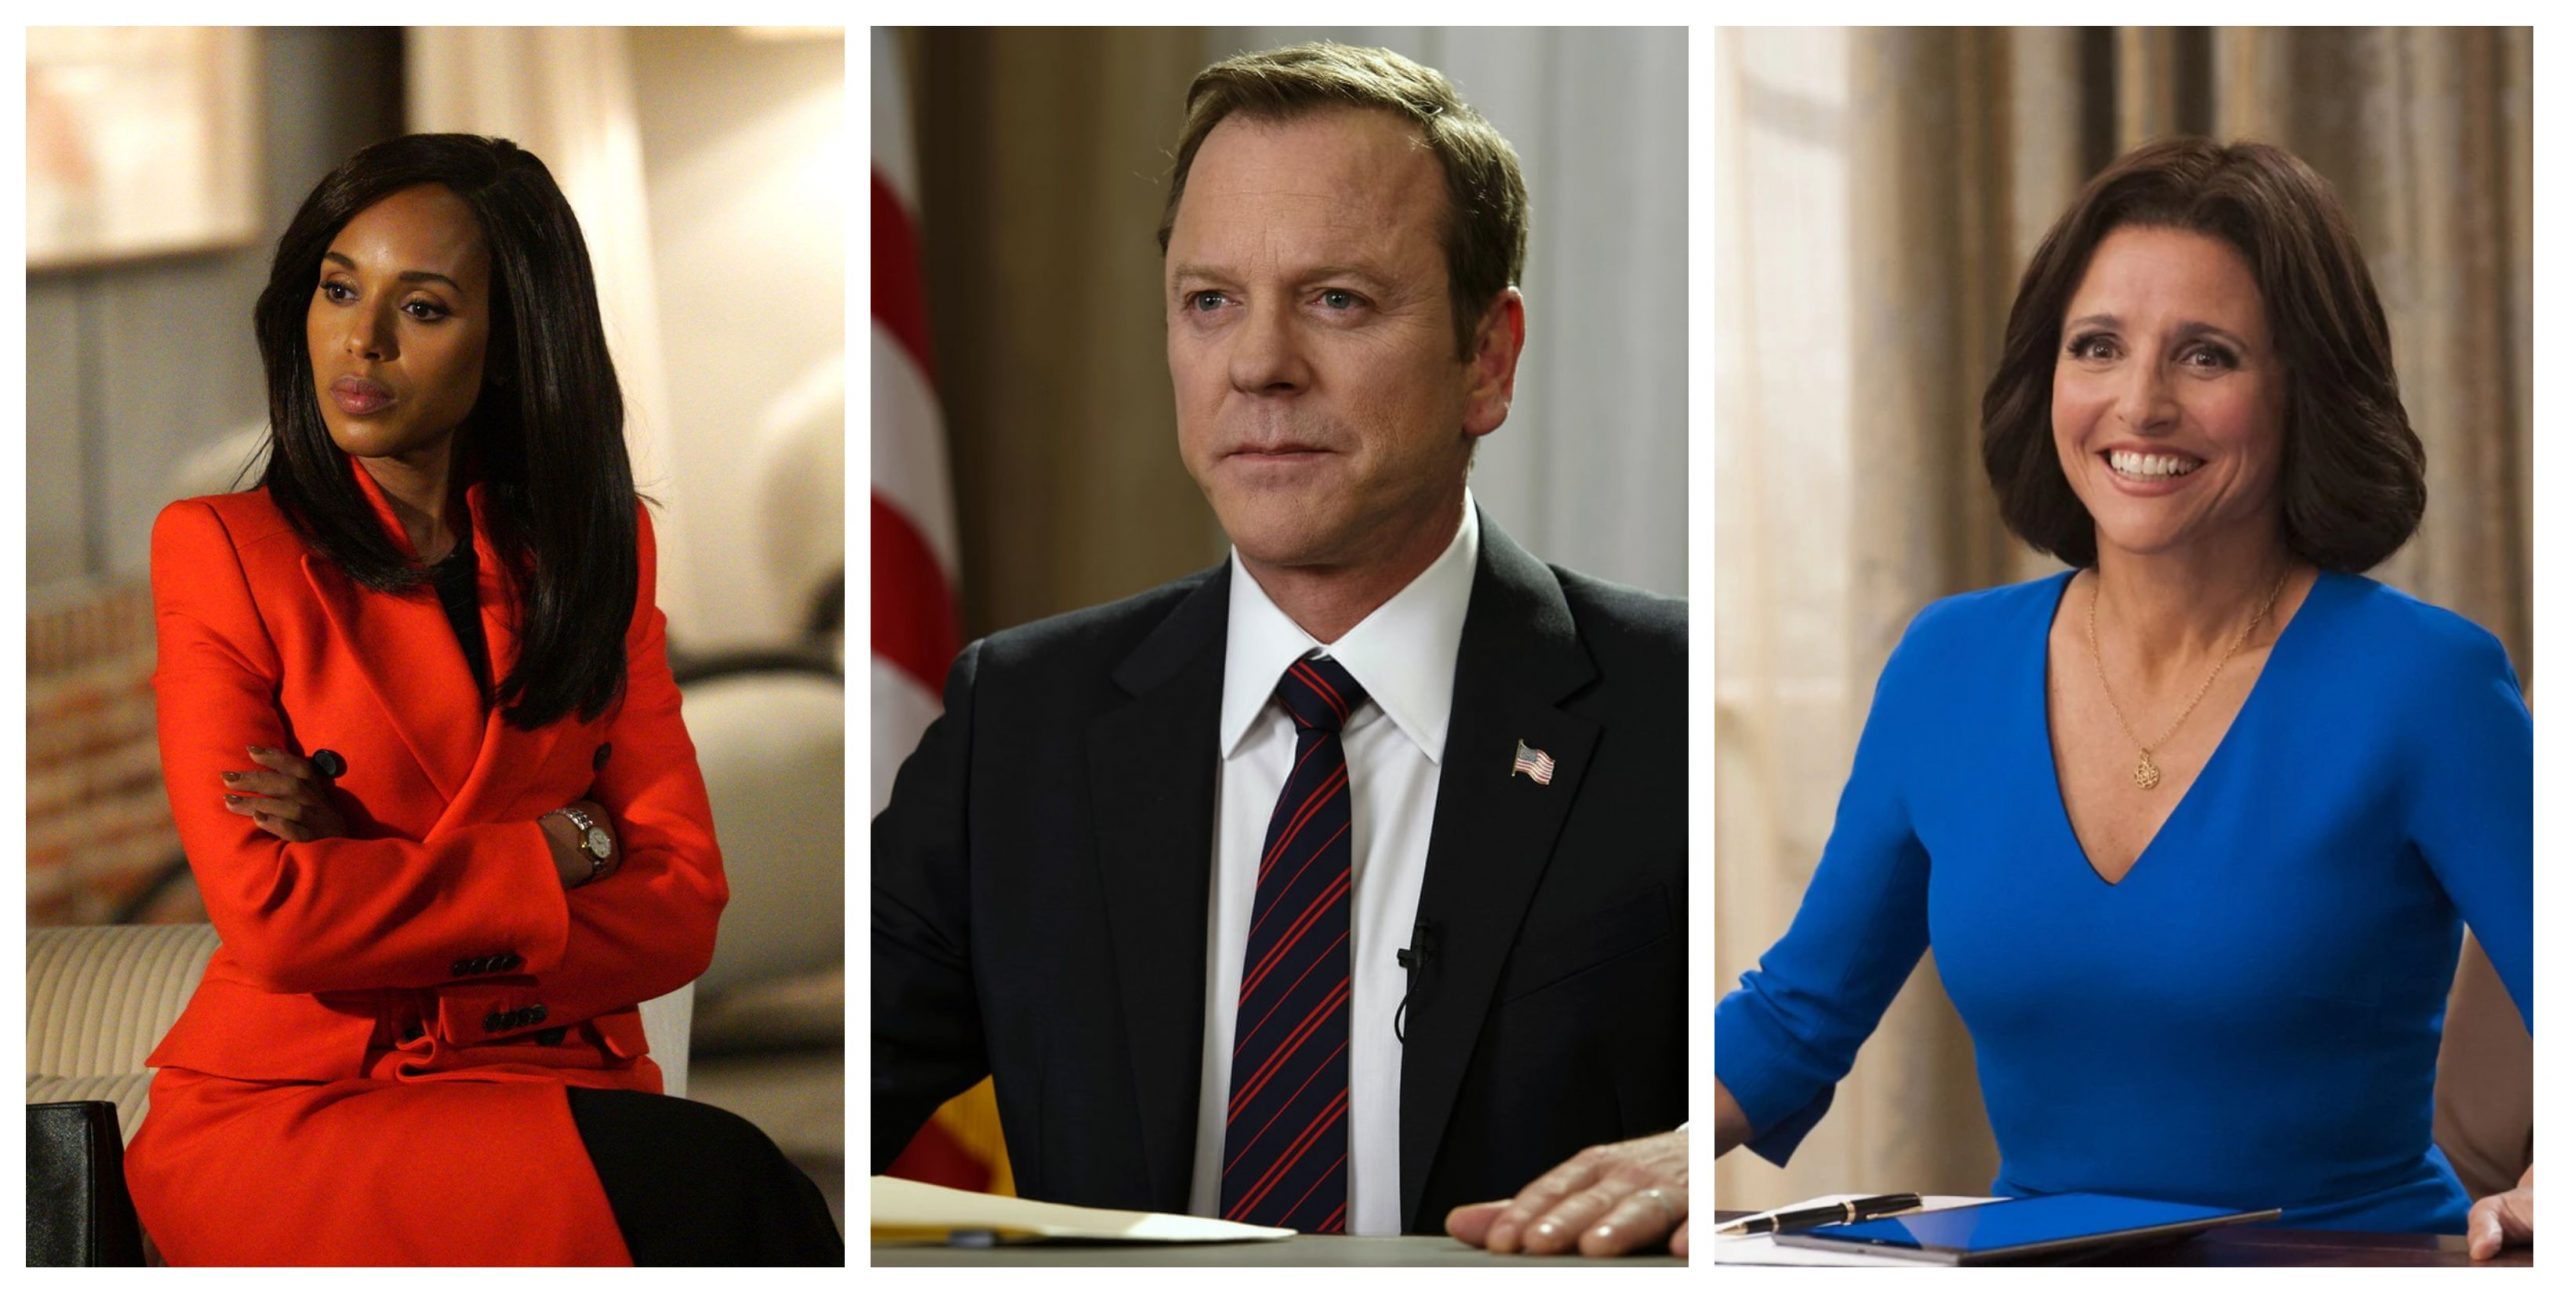 9 TV Shows to Watch on Election Day 2020